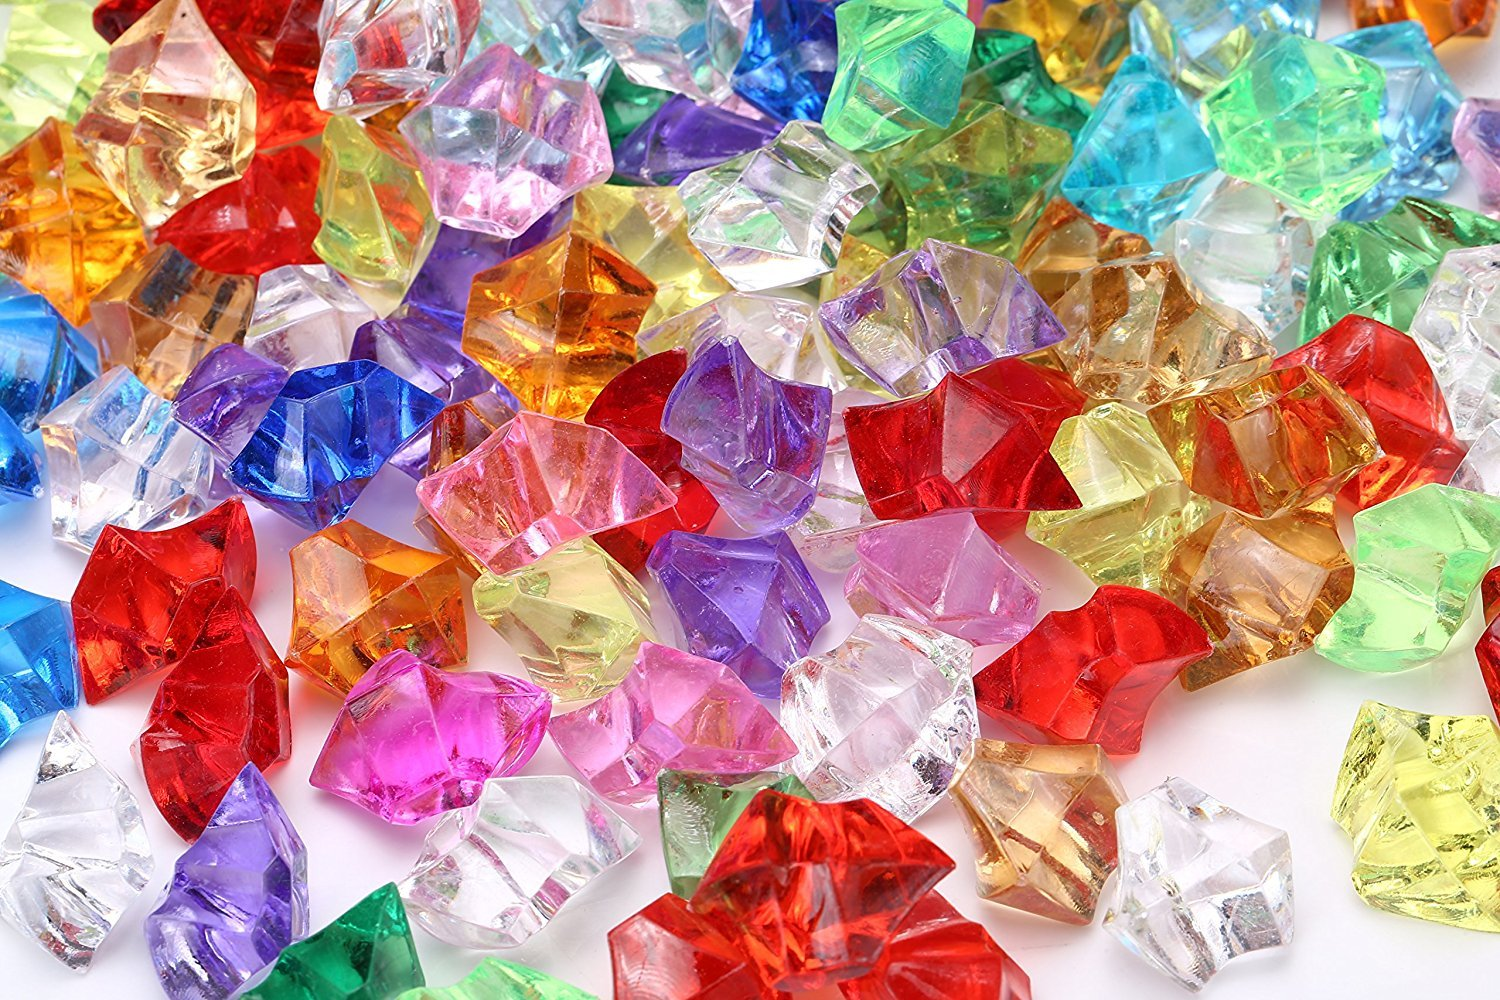 Yarssir 200PCS Acrylic Multicolor Ice Rock Crystals Treasure Gemstones for Table Scatters/Vase Fillers/Event/Wedding/Arts & Crafts/Birthday Decoration Favor